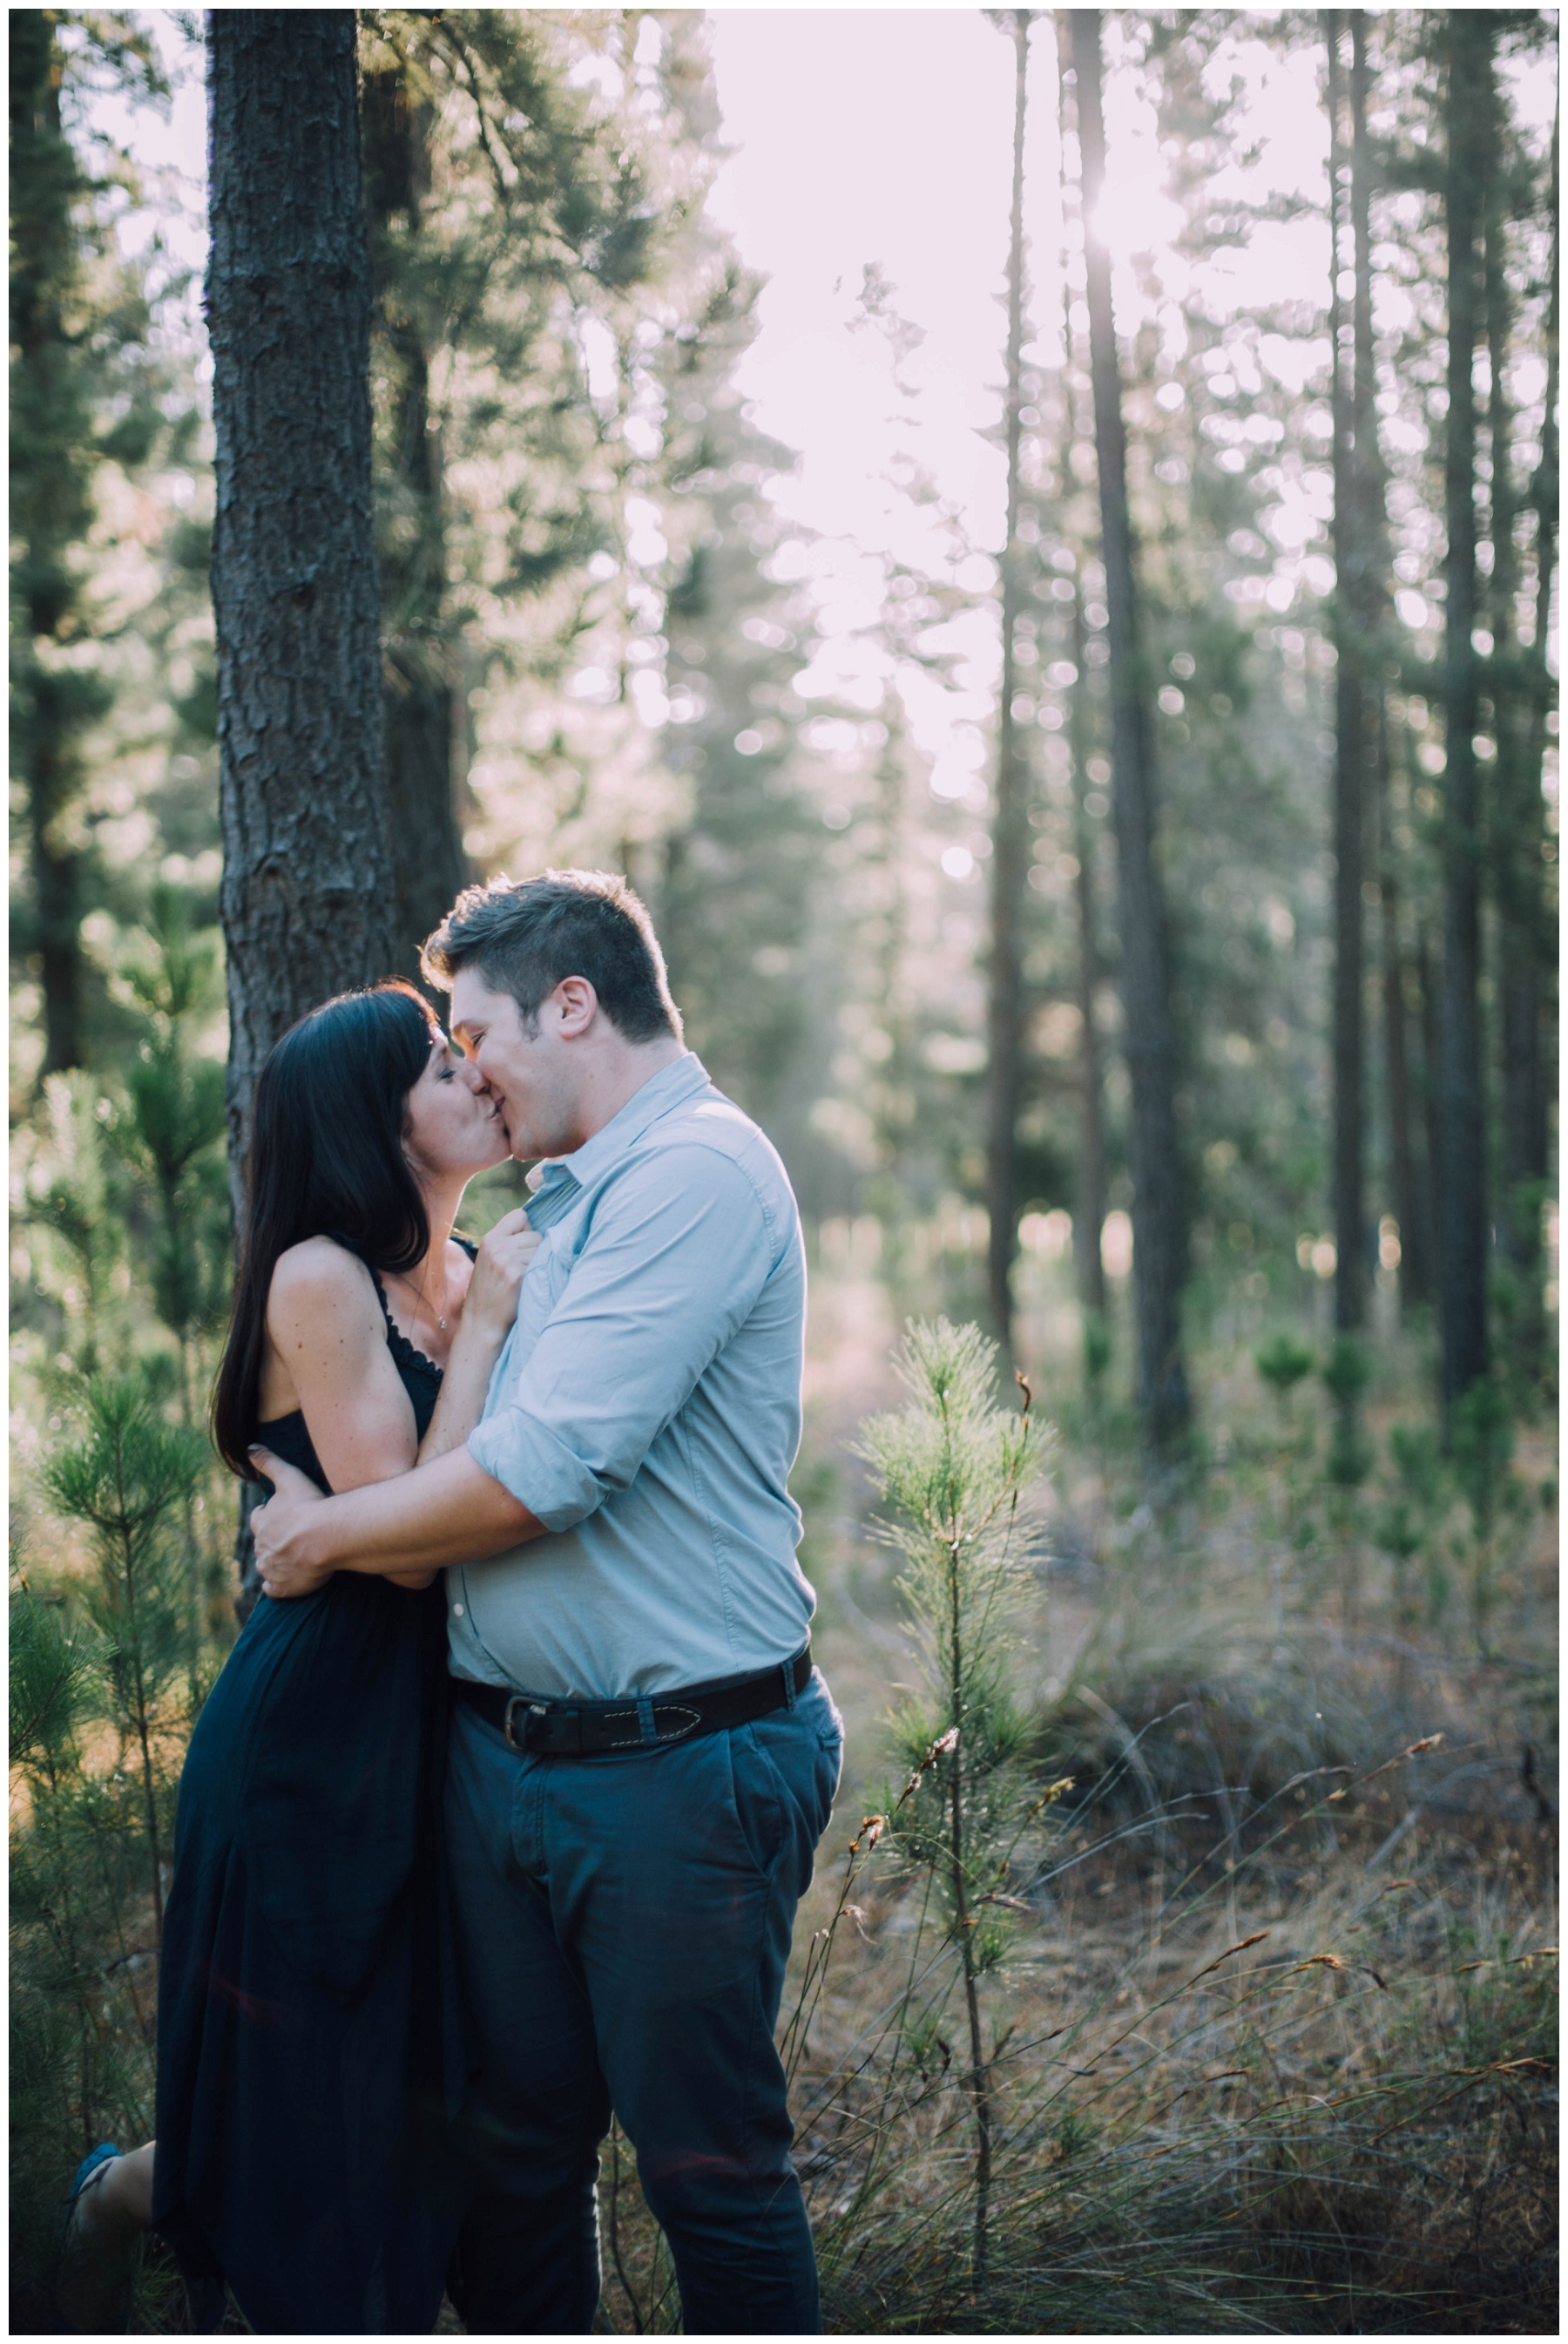 Ronel Kruger Cape Town Wedding and Lifestyle Photographer_1514.jpg